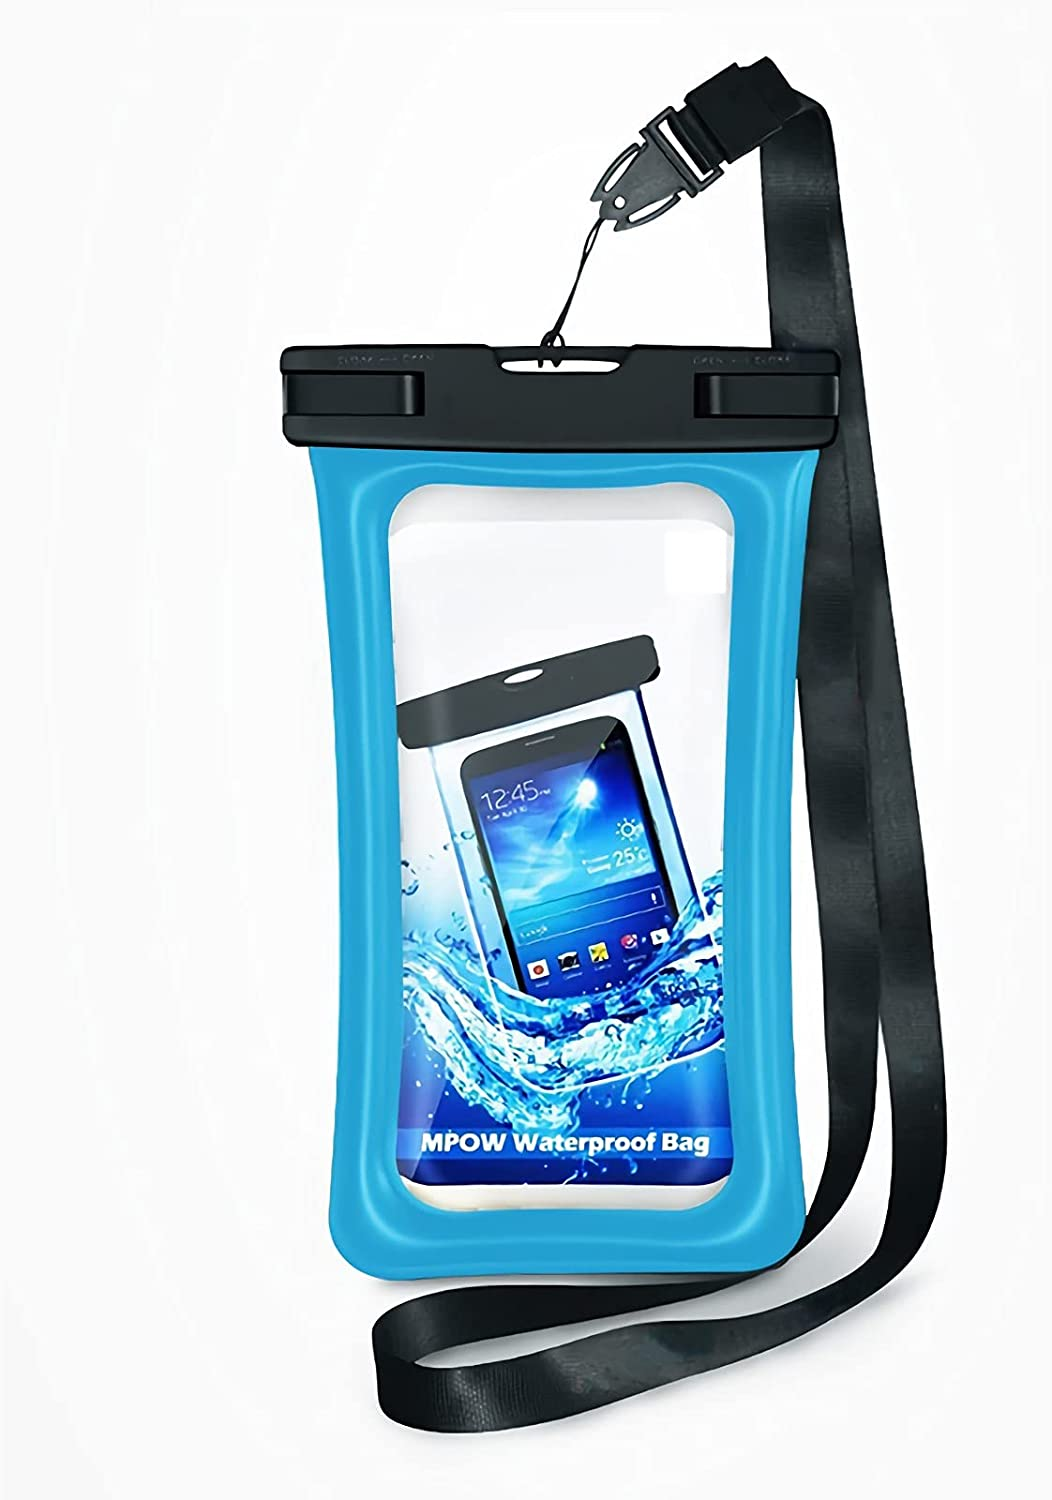 """Water Proof Bag Packs Neck Pouch Cell Phone Bag Waterproof for Phone Pouch Floating Universal Waterproof Pouch Cellphone Dry Bag Case All Phones Up to 6.5"""" (Sky Blue, L)"""